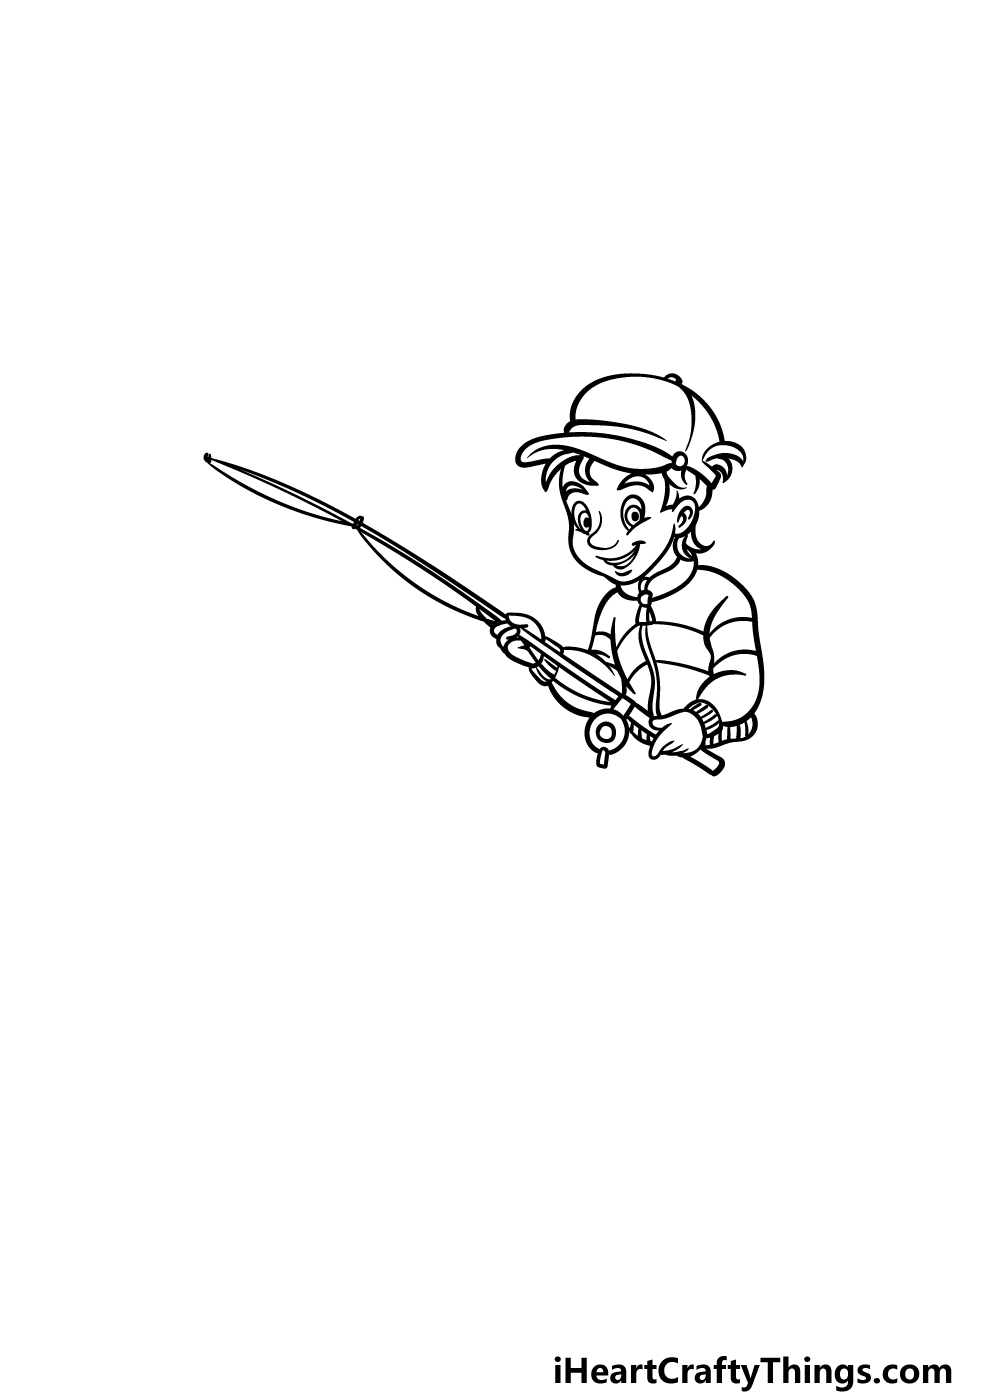 how to draw fishing step 2